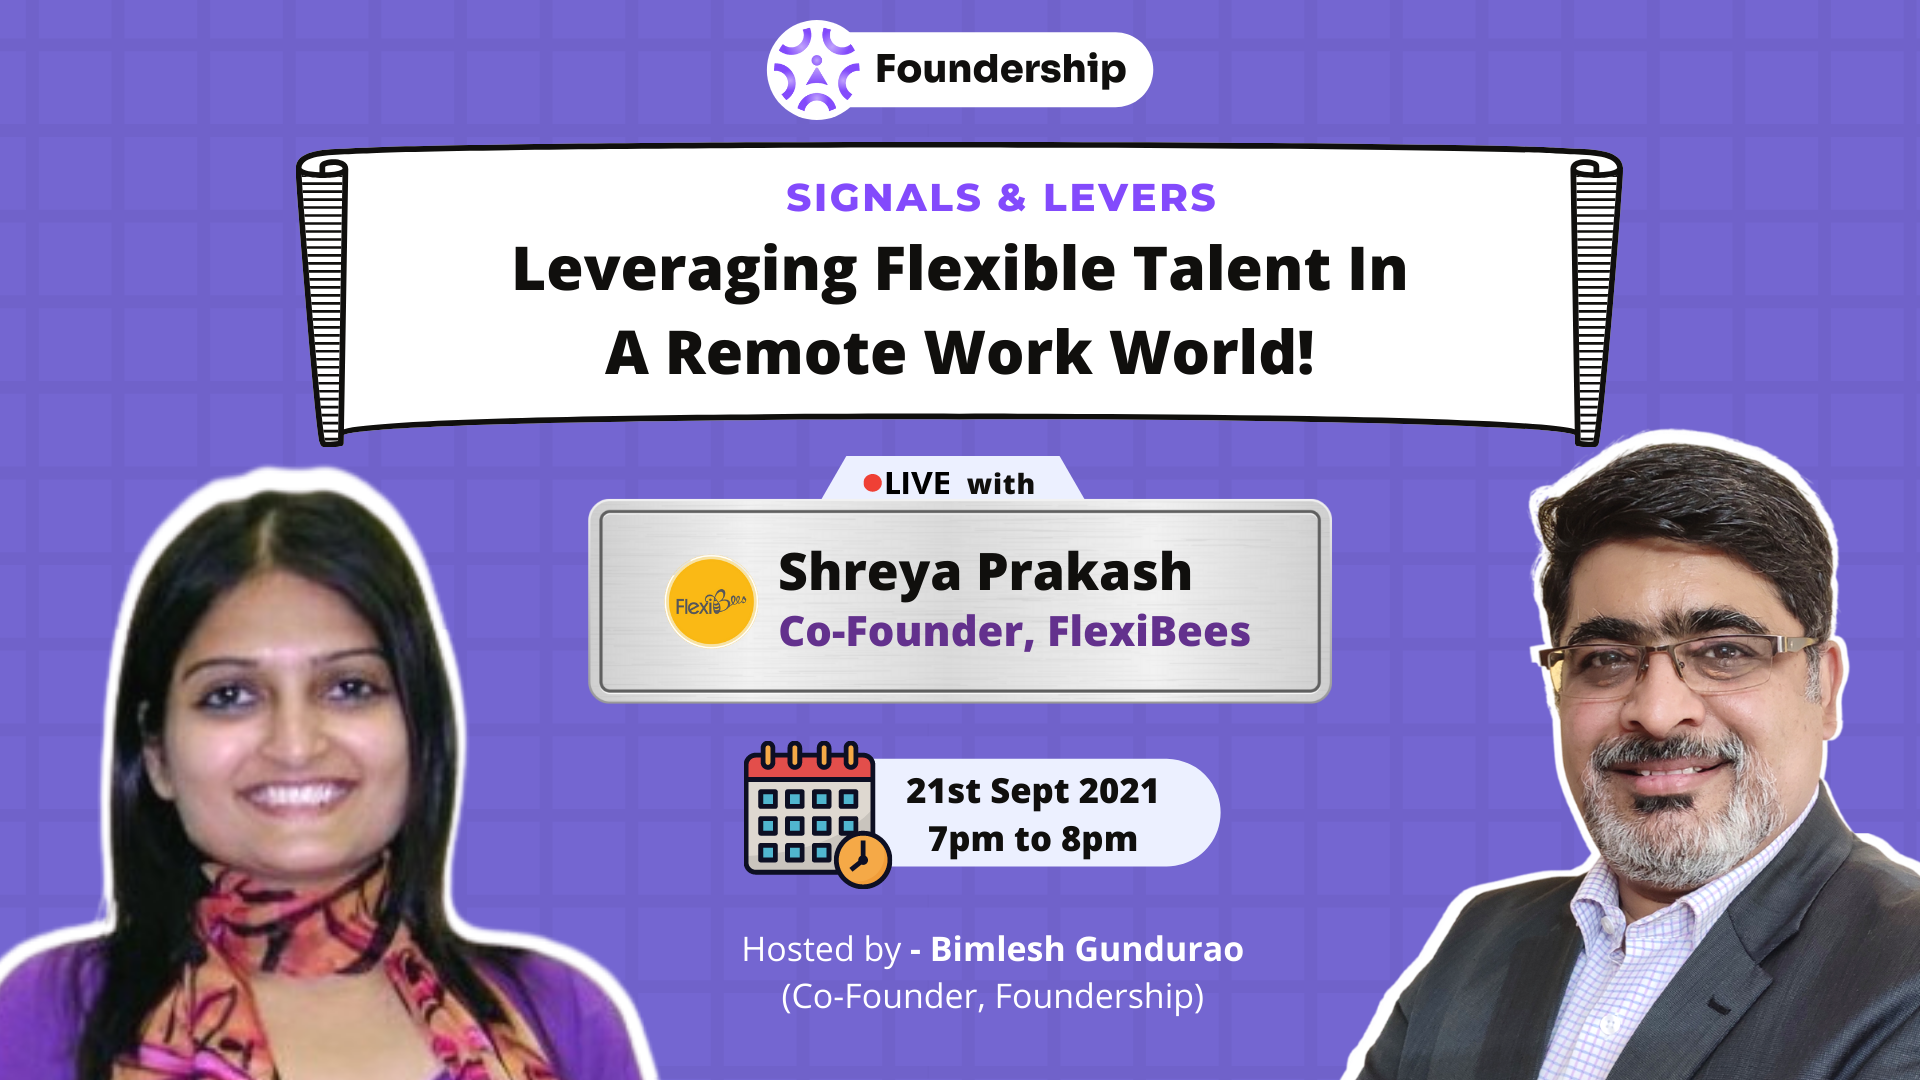 Leveraging Flexible Talent In A Remote Work World!